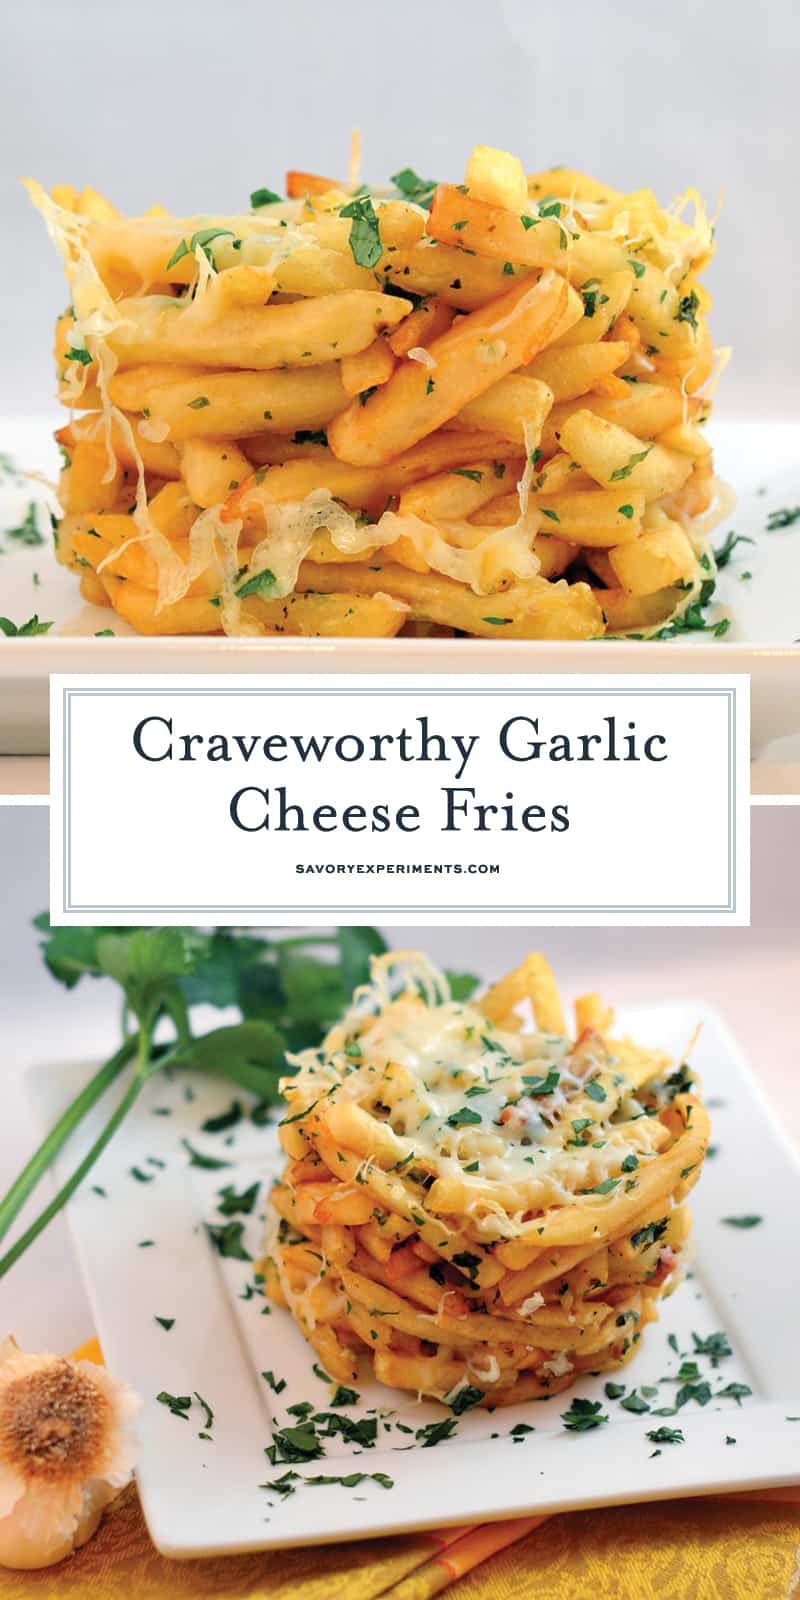 This Garlic Cheese Fries recipe is a stunning tower of cheesy, garlicky, crispy French fries. Make your own in 30 minutes! #cheesefries #ovenbakedfries www.savoryexperiments.com